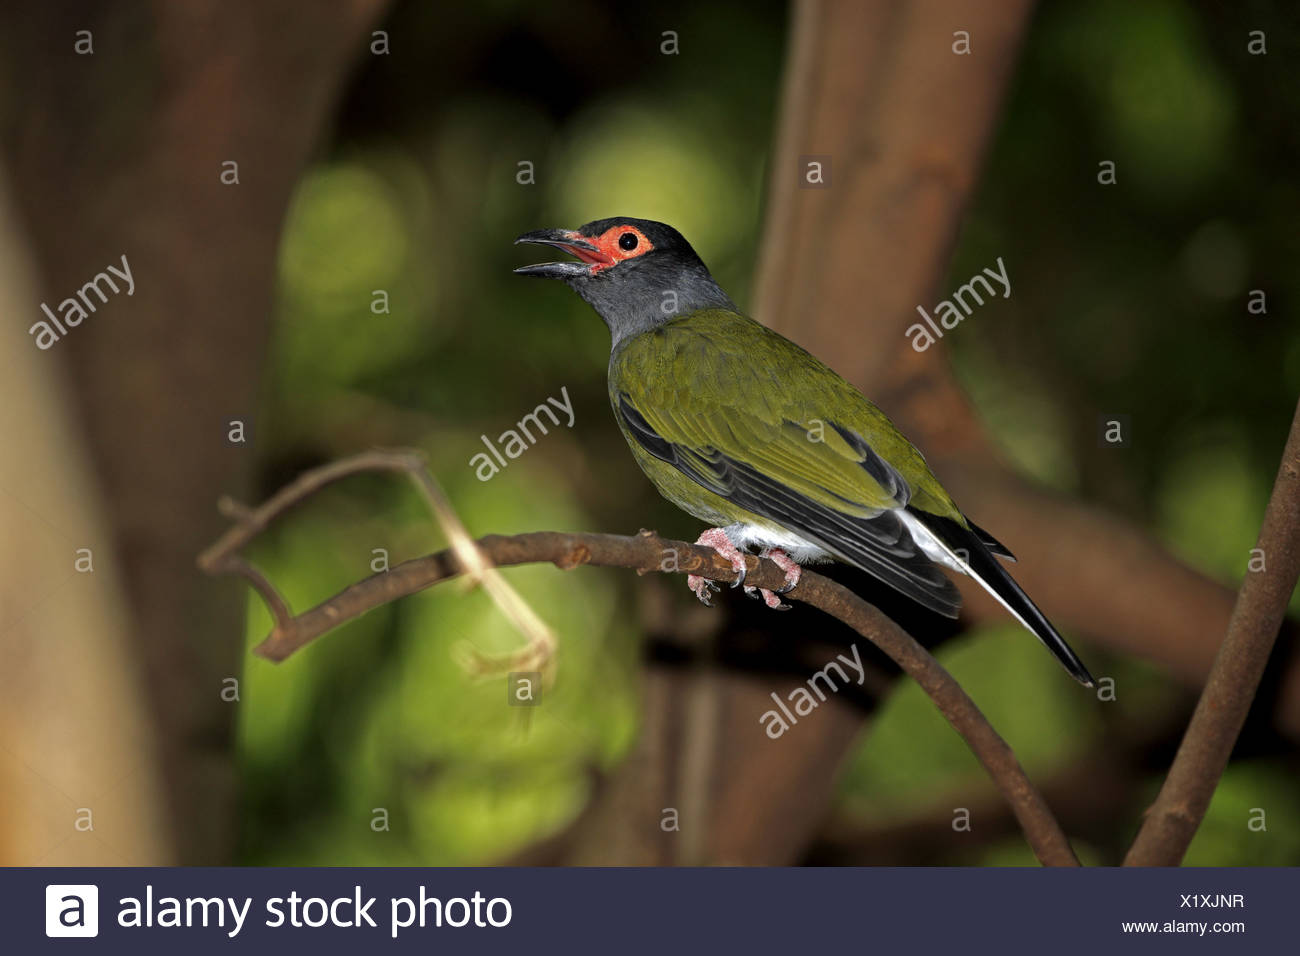 Green Figbird (Sphecotheres viridis) adult male, calling, perched on twig, Australia Stock Photo